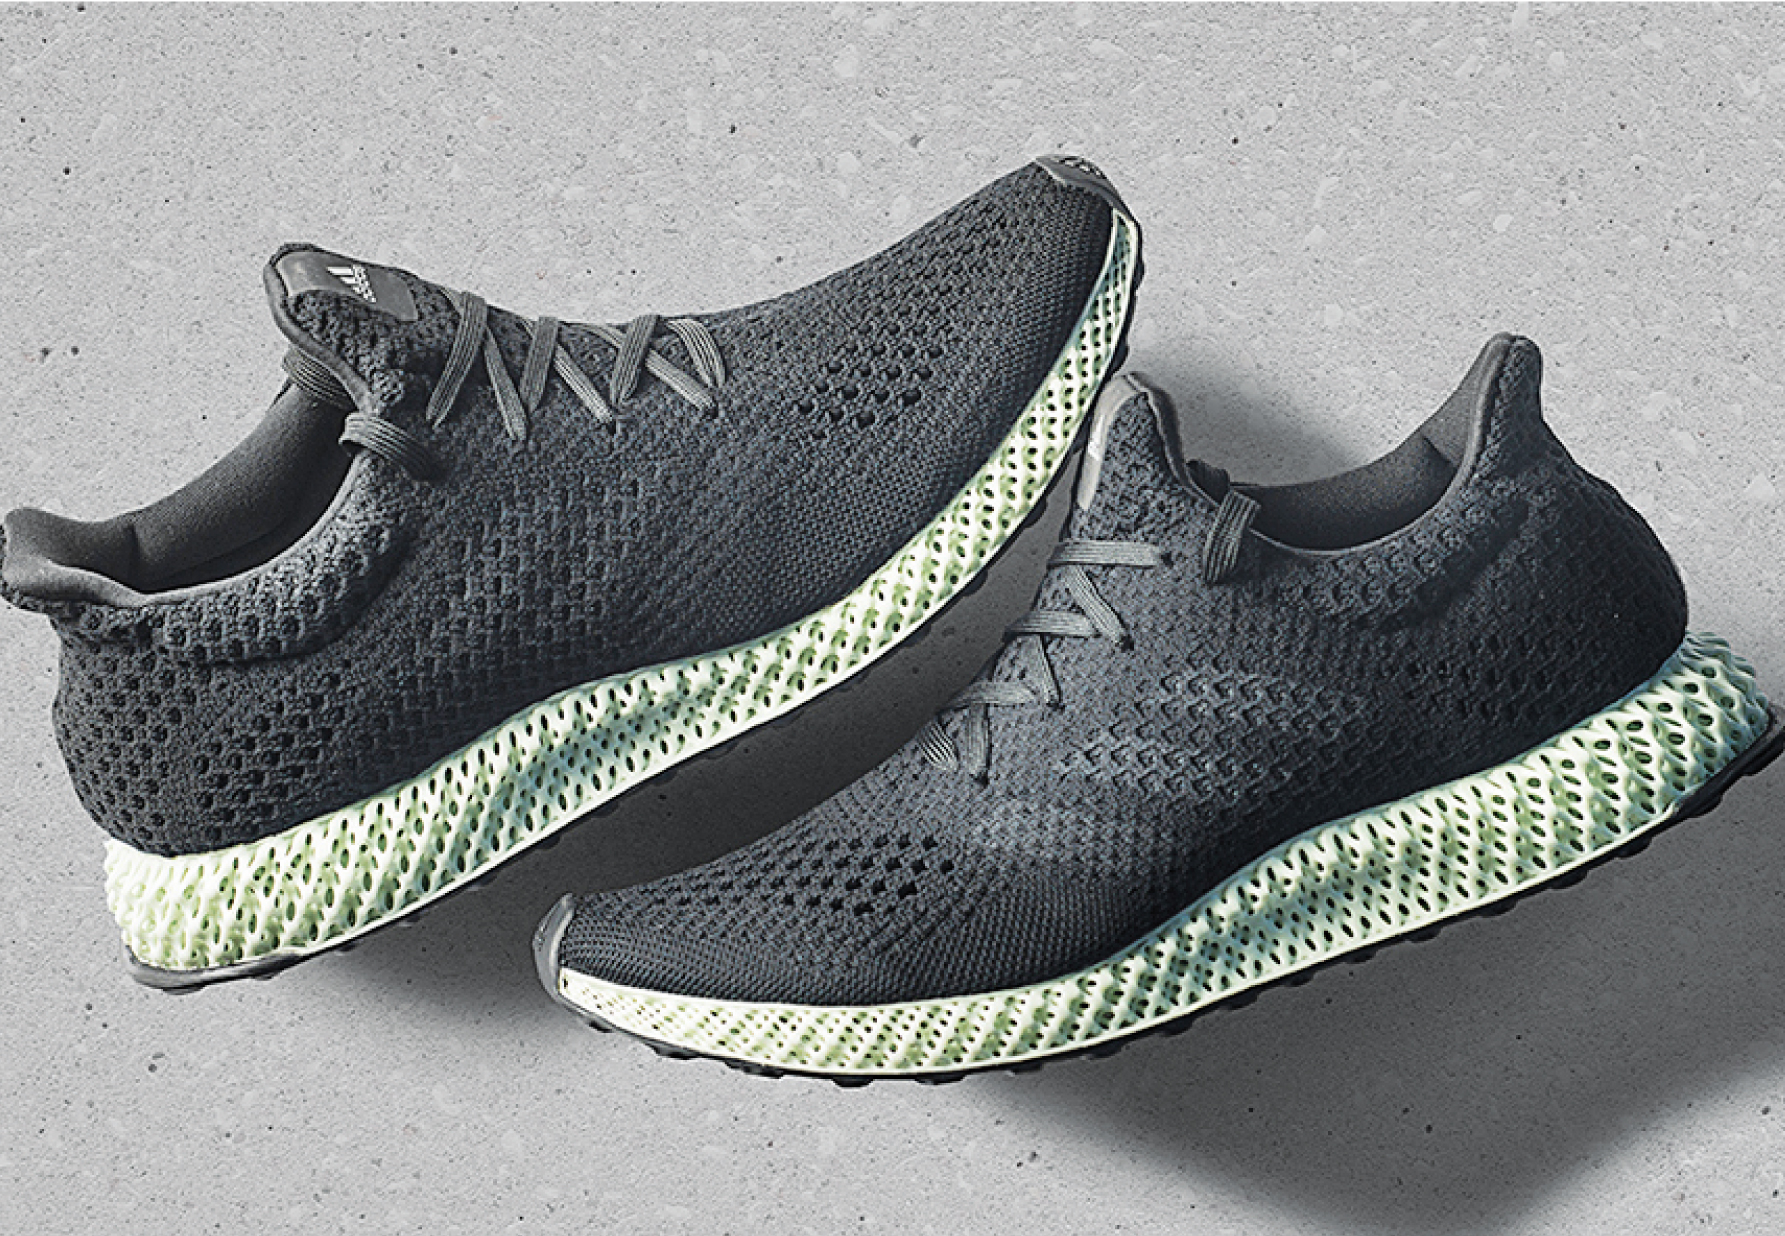 buy popular 541f4 02a5c The future of craftsmanship Adidas Futurecraft 4D  Running-M